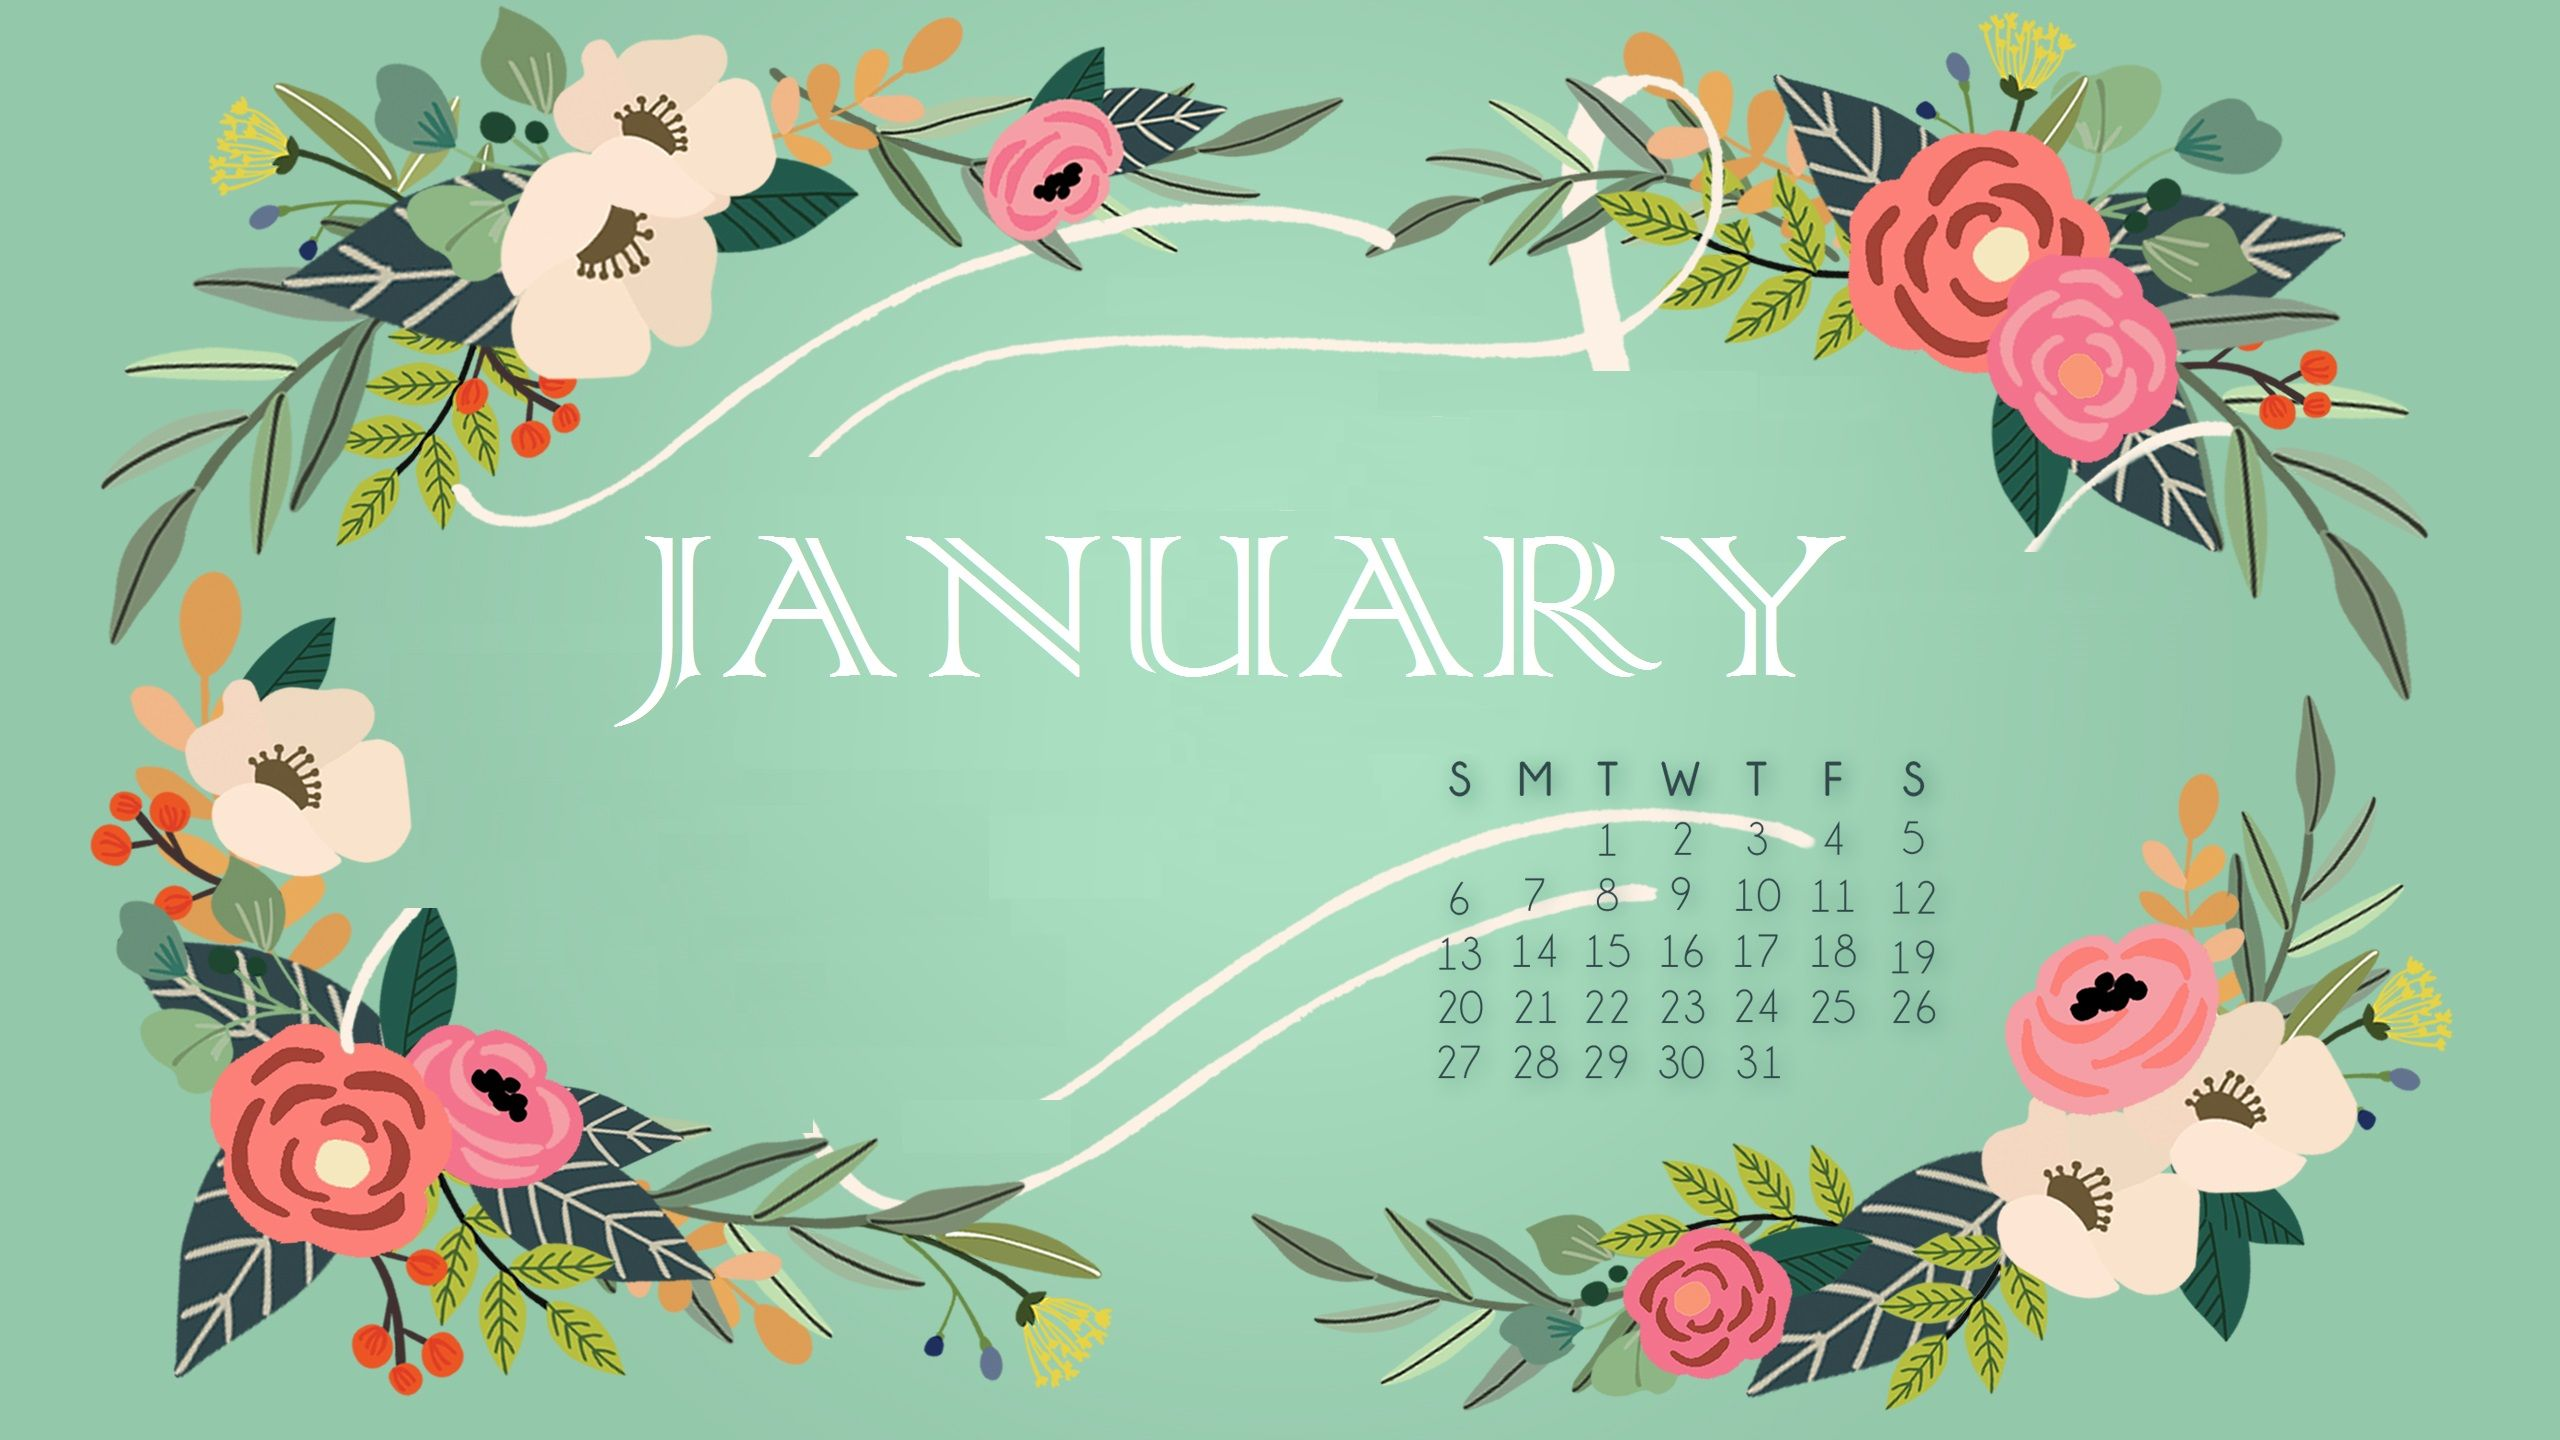 Floral January 2019 Calendar Wallpaper #wallpaper # ...